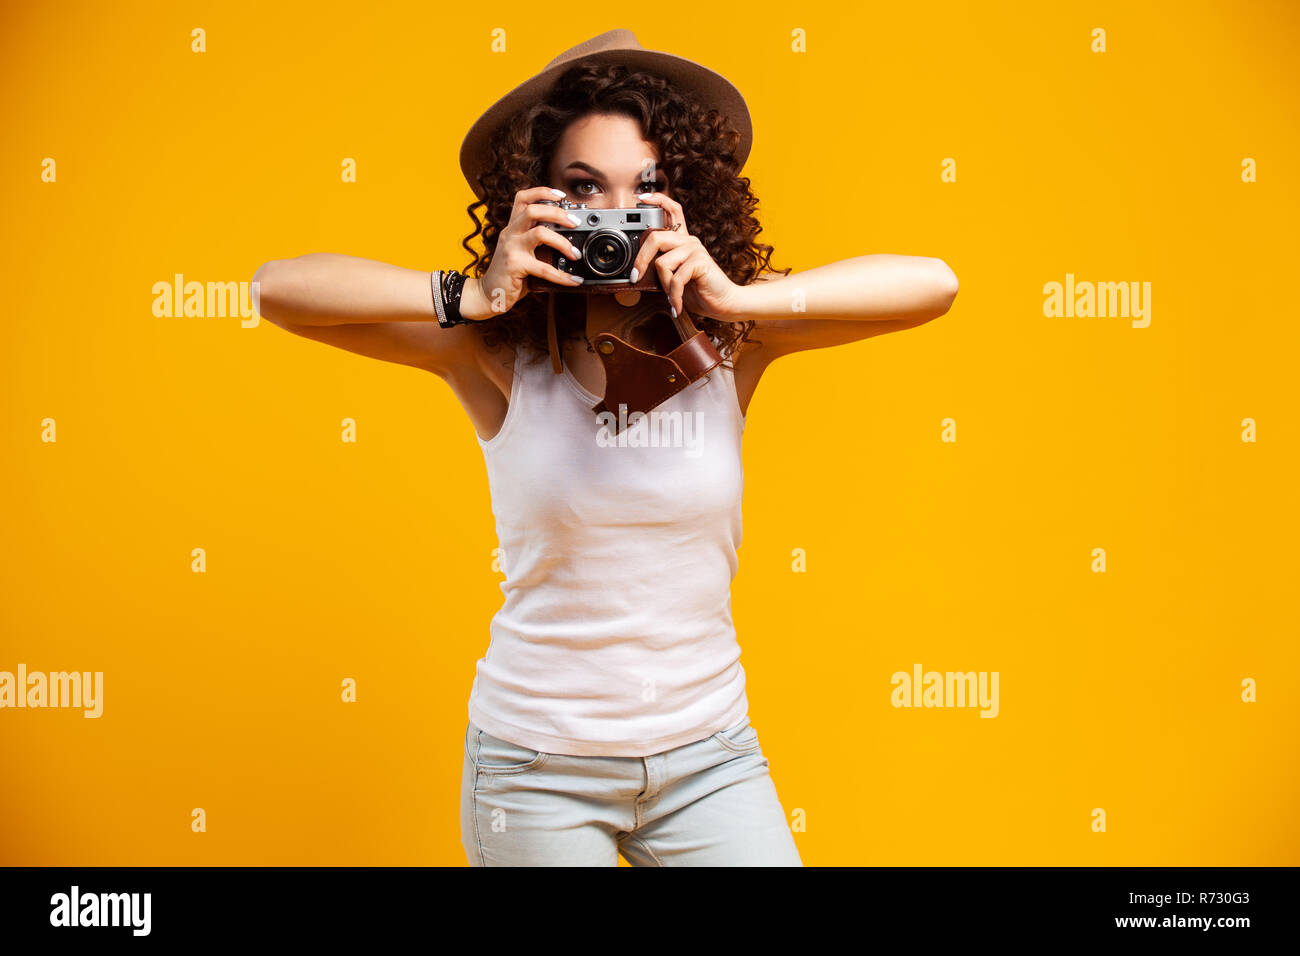 Portrait of laughing young woman taking pictures on retro vintage photo camera isolated on bright yellow background. People sincere emotions, lifestyl - Stock Image